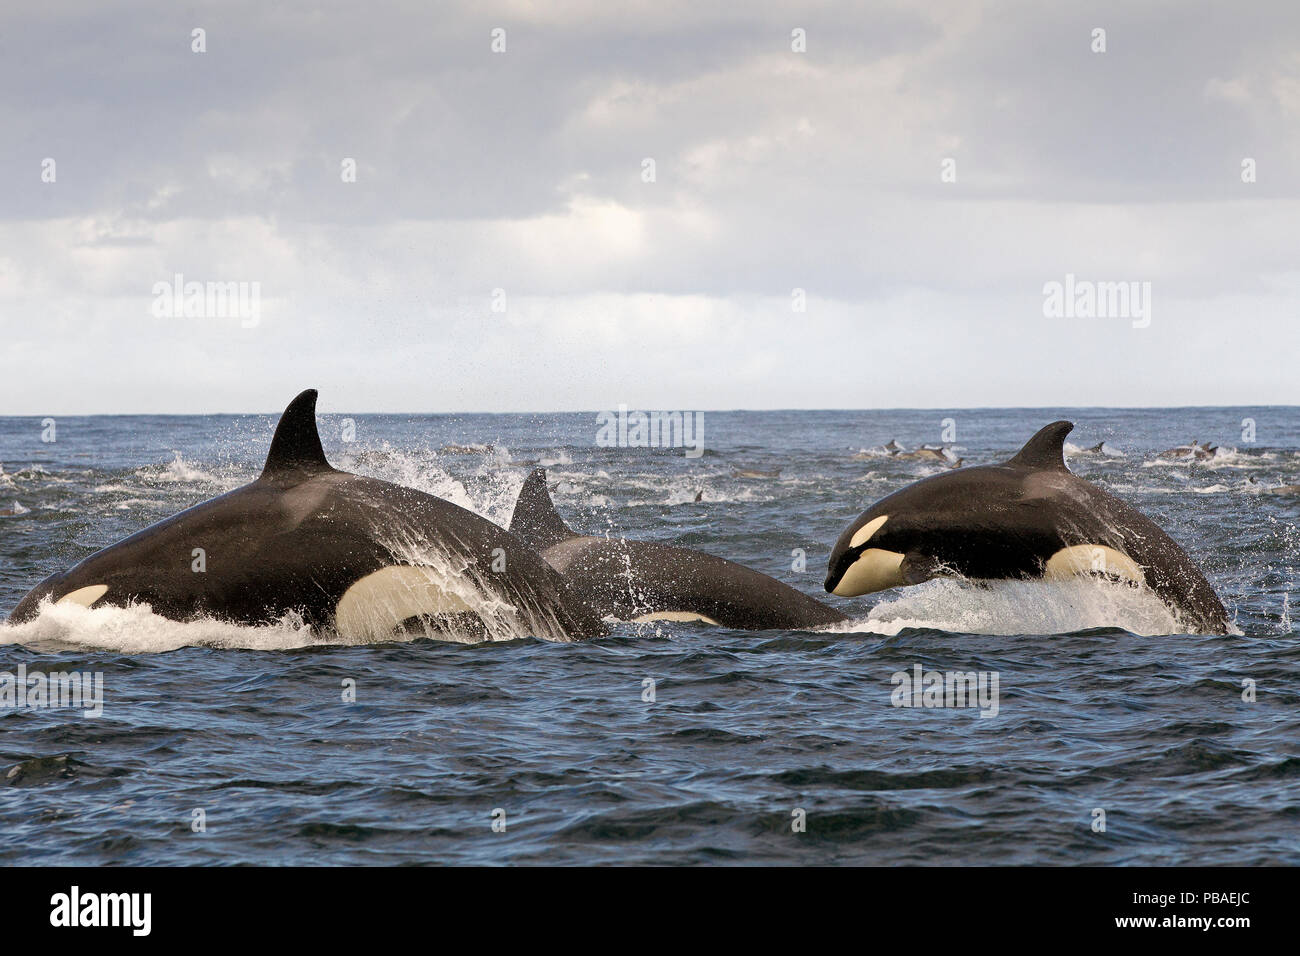 Orca (Orcinus orca) pod hunting Common dolphin at surface, False Bay, South Africa, April. - Stock Image